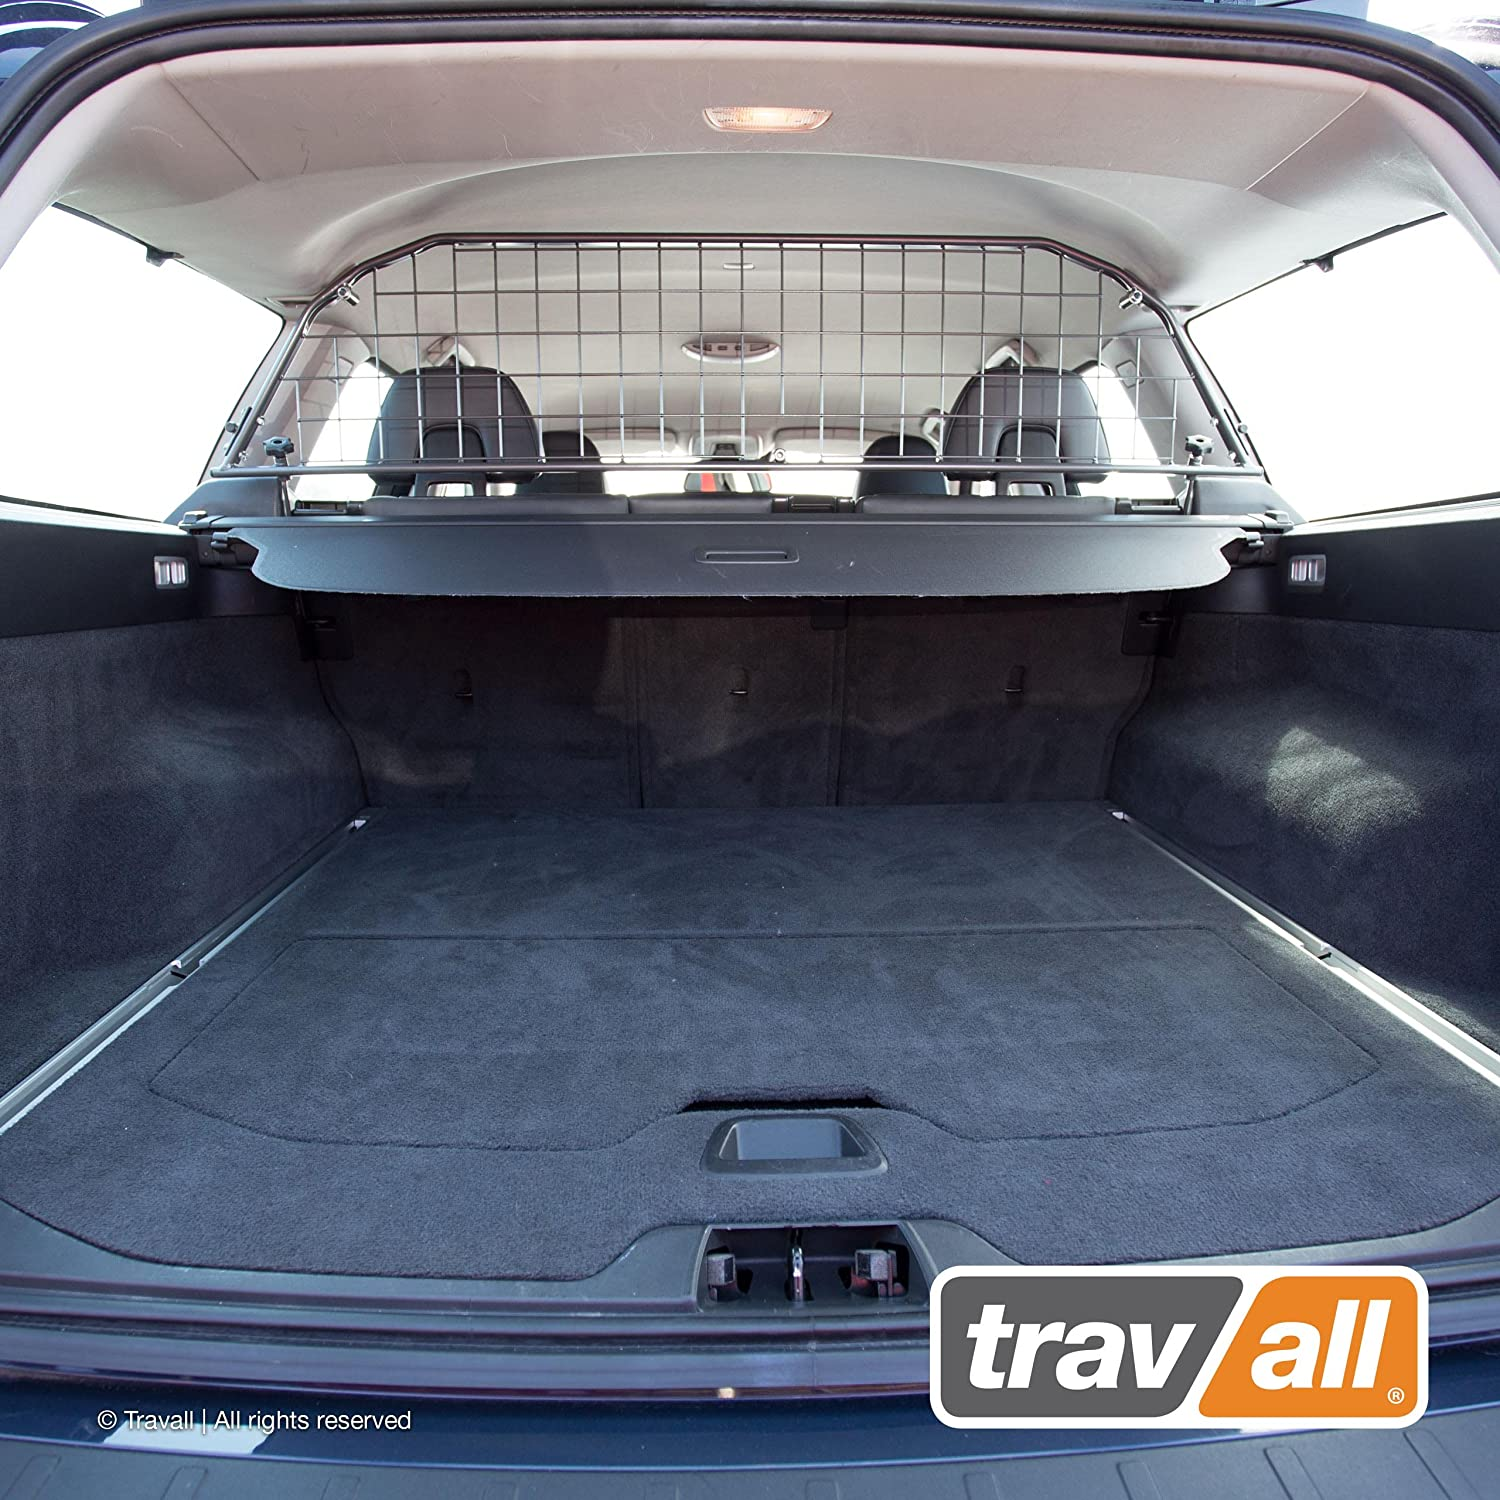 Travall Guard Compatible with Volvo V70 Wagon and XC70 2007-2016 TDG1203 – Rattle-Free Steel Pet Barrier